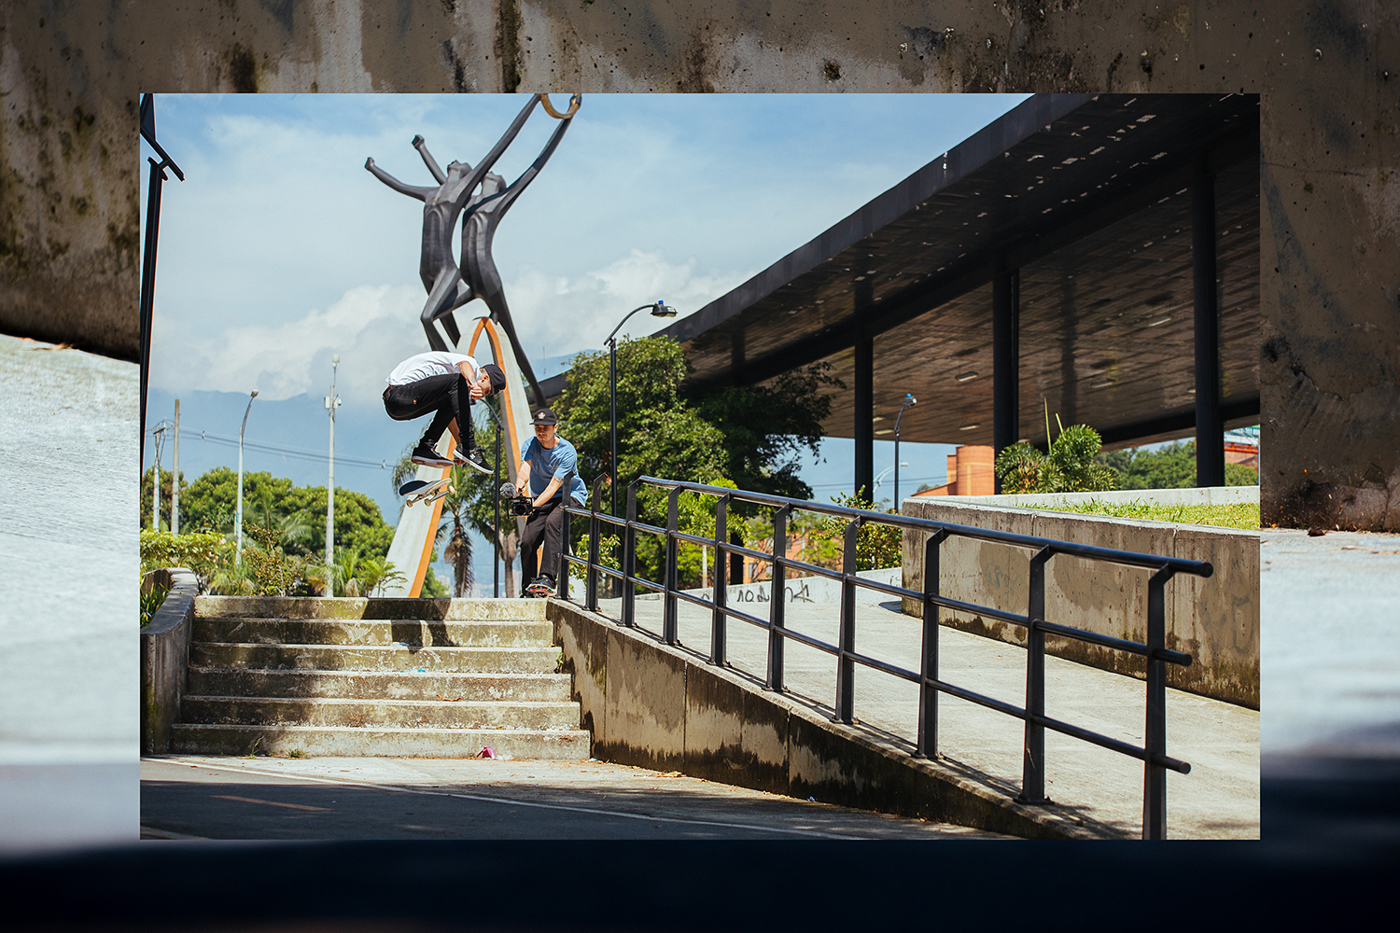 Camilo Henao - Switch Heelflip